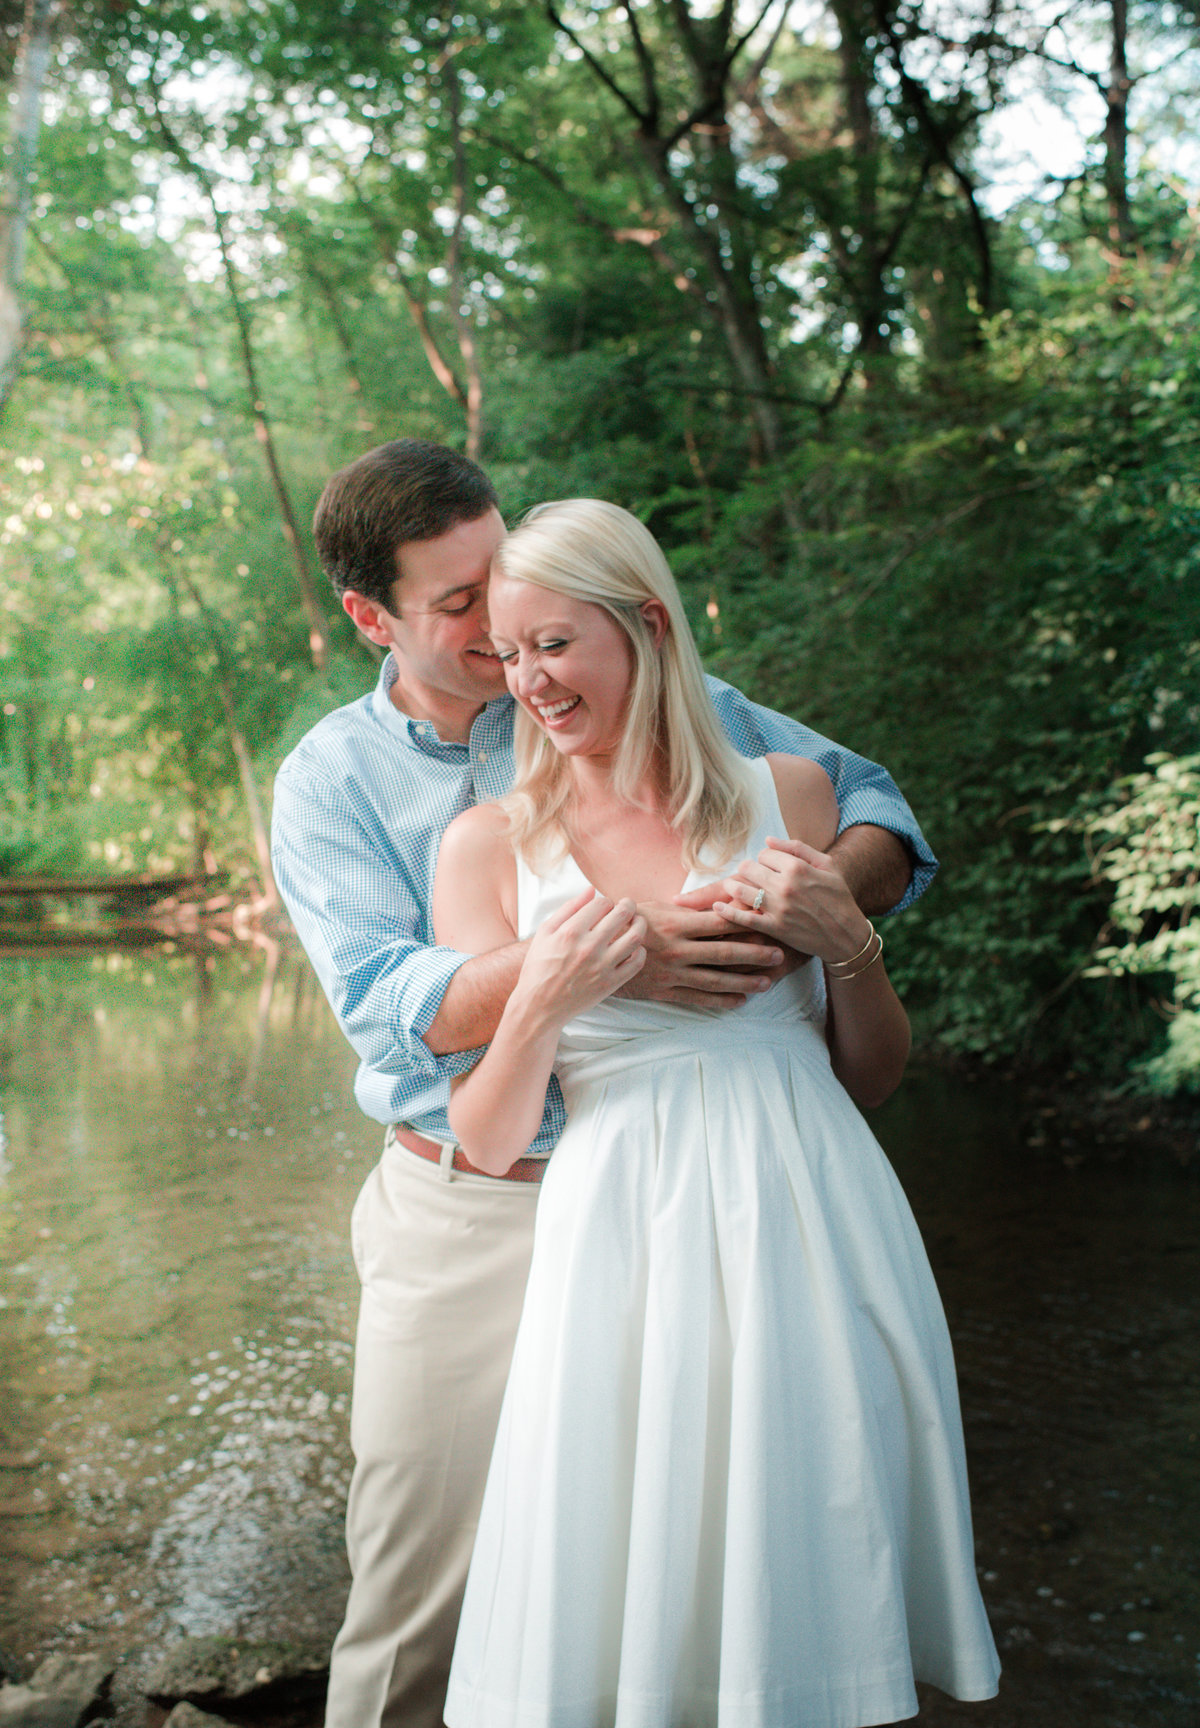 Tennessee Wedding Photographer - Mint Magnolia Photography281